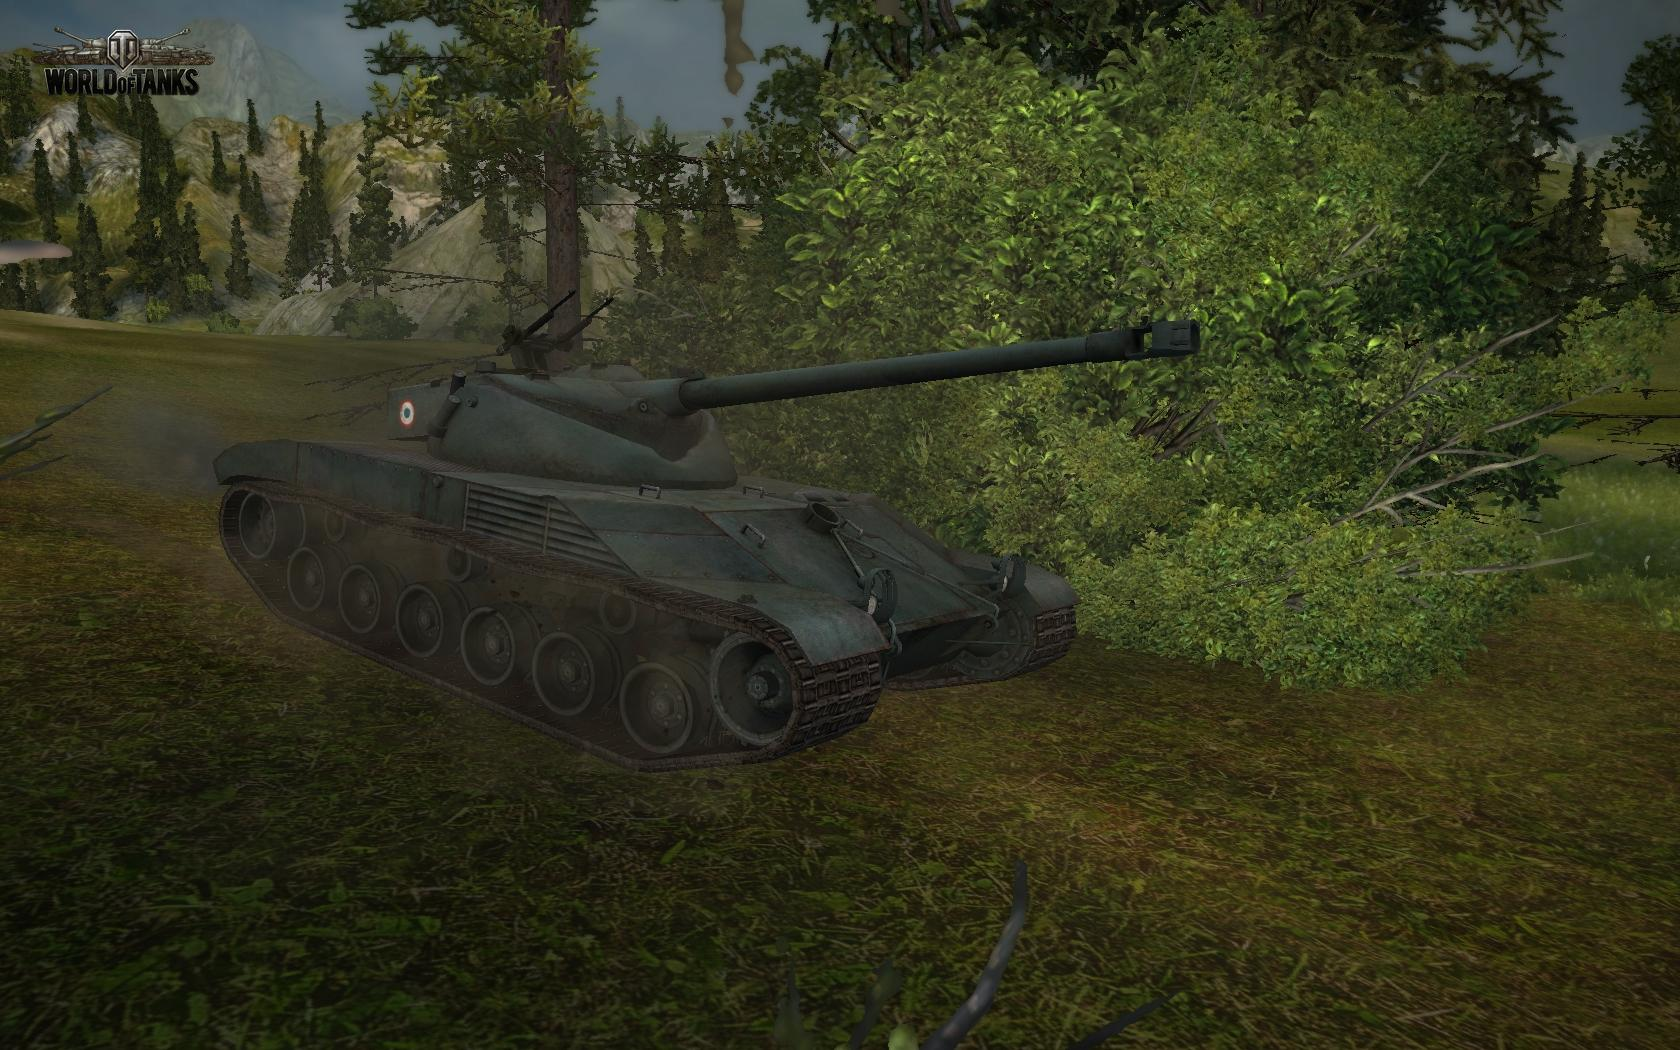 World_of_Tanks_patch_7.5_new